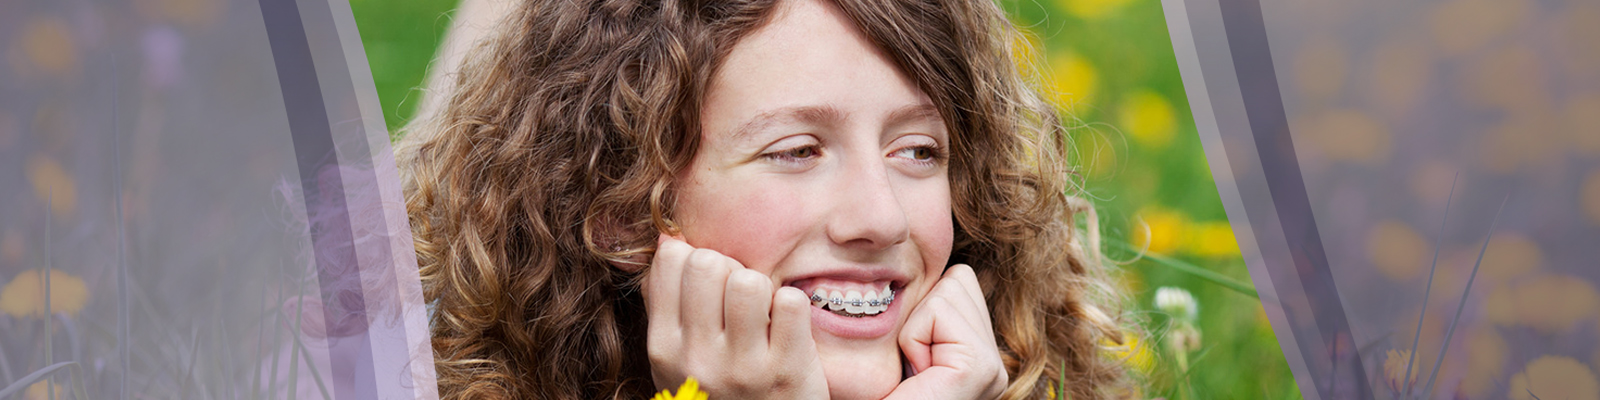 Orthodontic supplies online